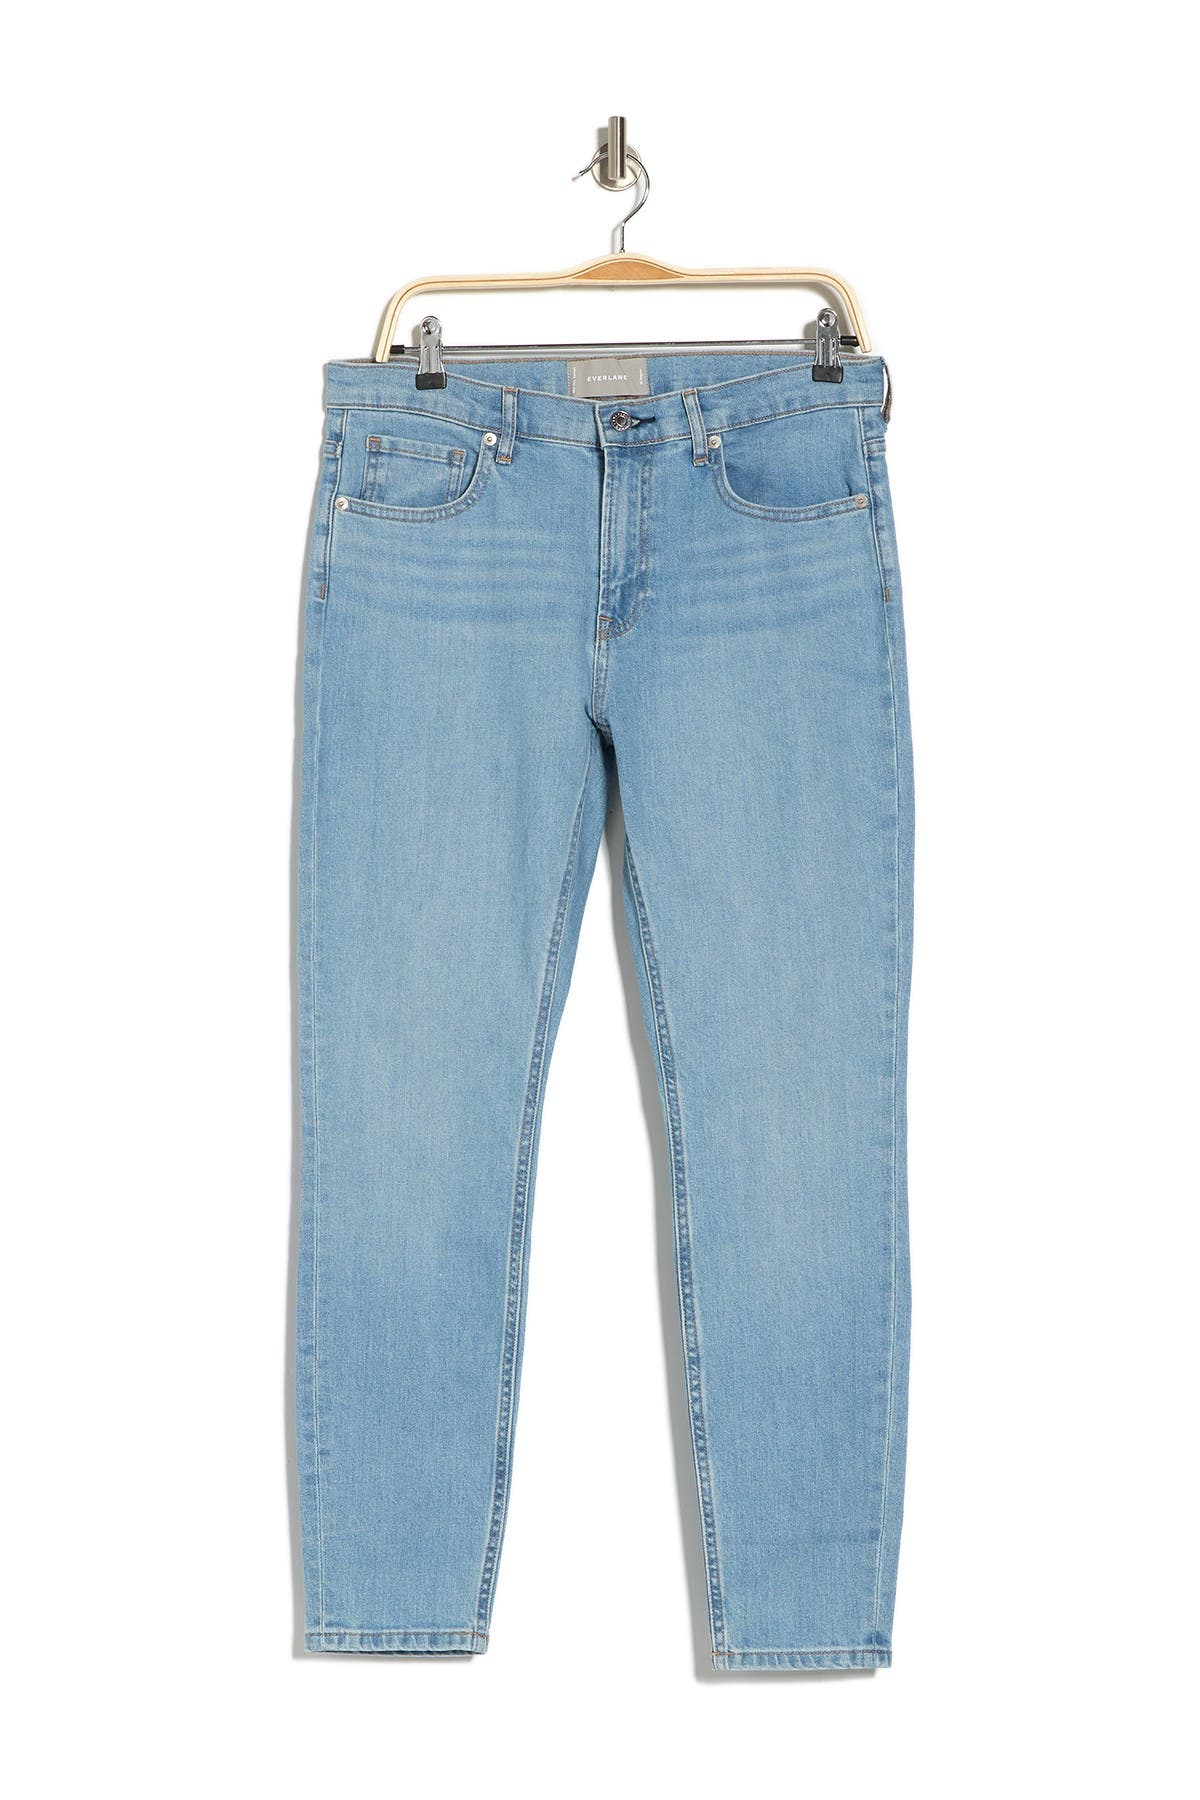 Image of EVERLANE The Mid Rise Skinny Jeans